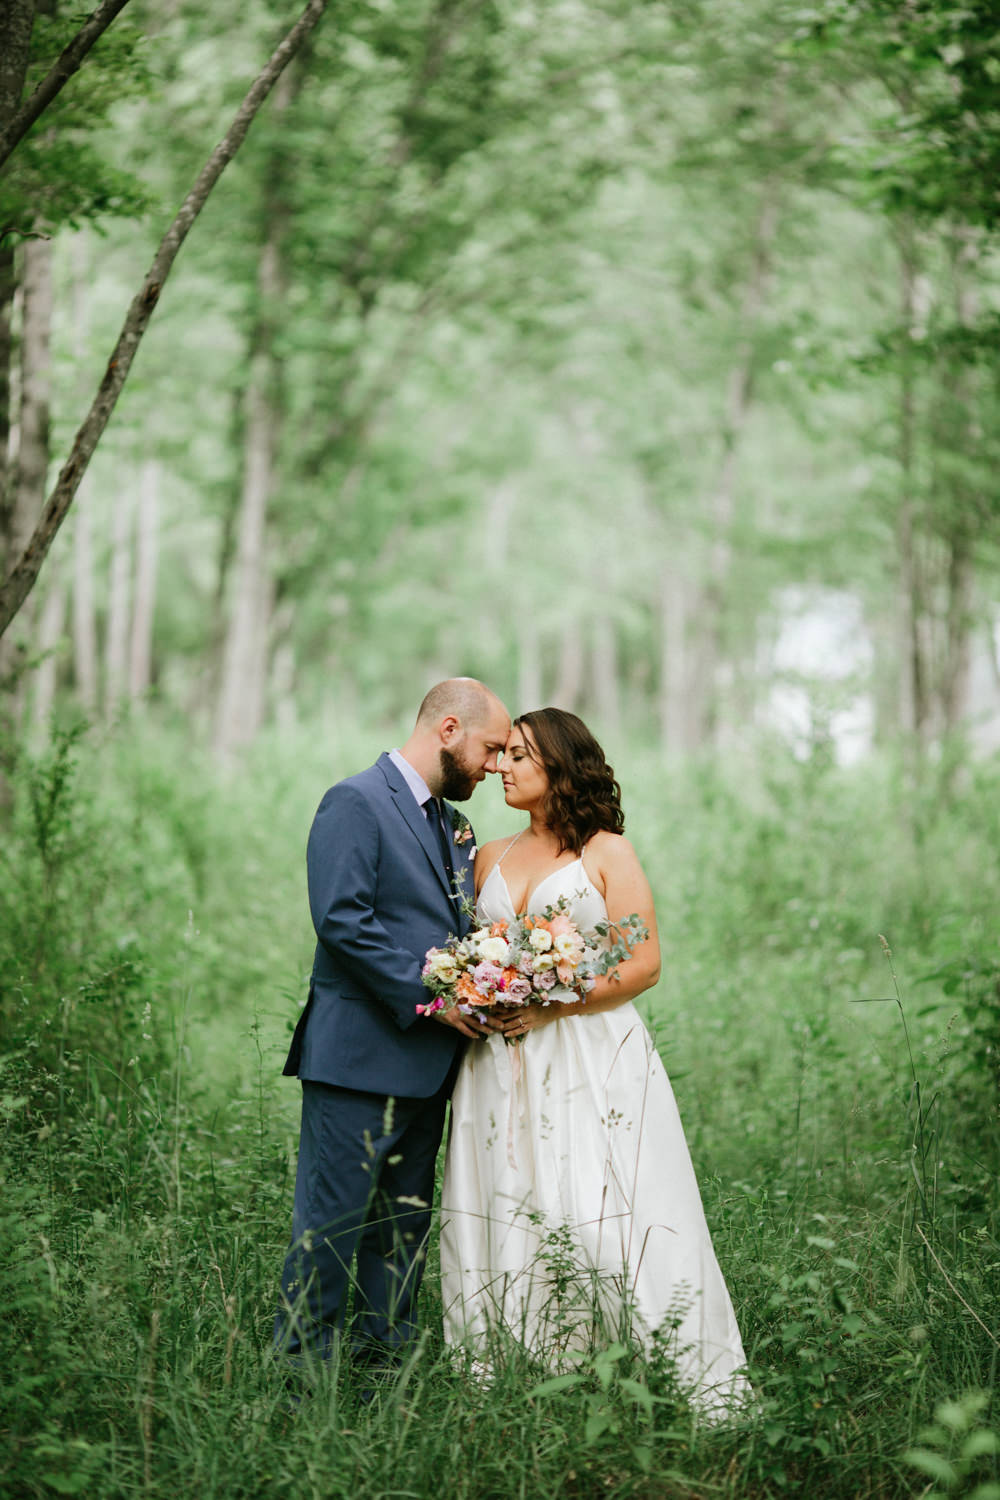 sugarboofarmwedding-2037.jpg